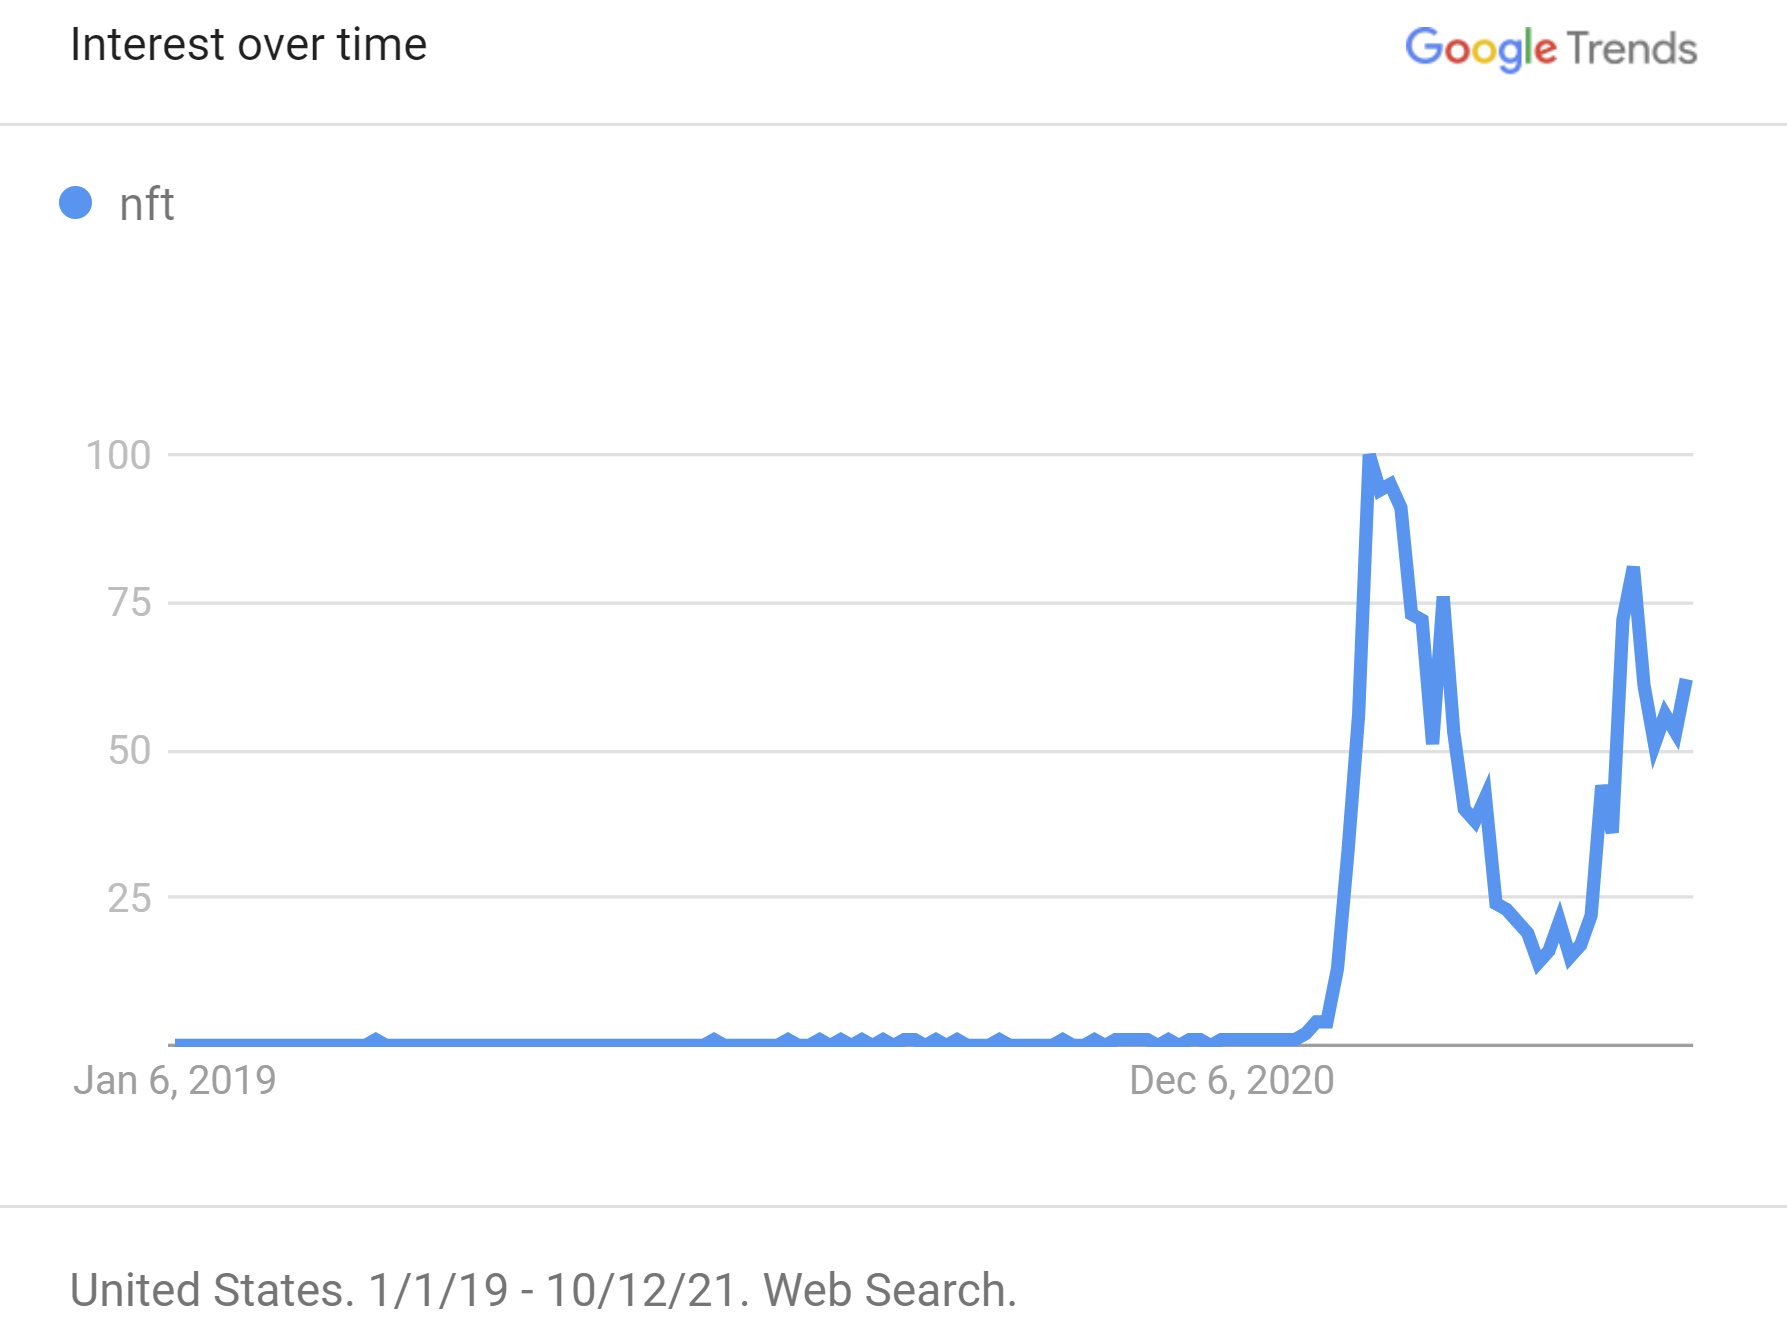 nft-google-search-trends-over-time